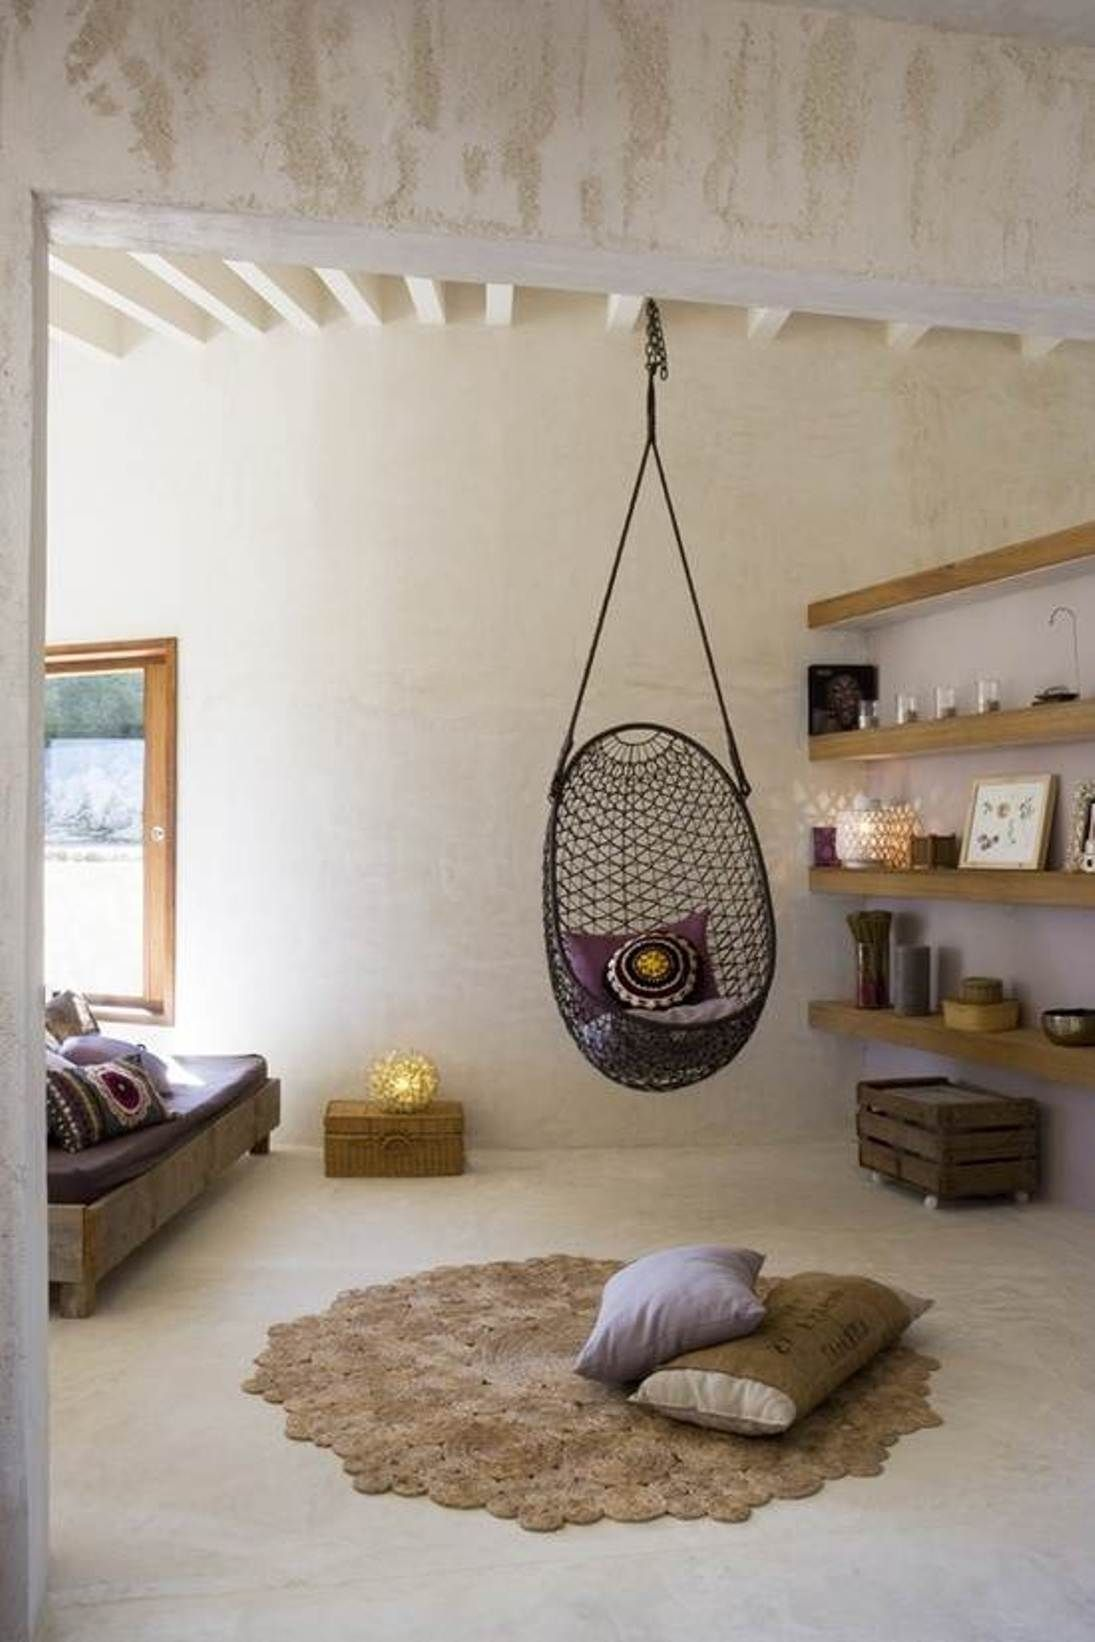 captivating grid rattan bedroom hanging chair design hangingchairs netnoot furniture www - Bedroom Chair Ideas